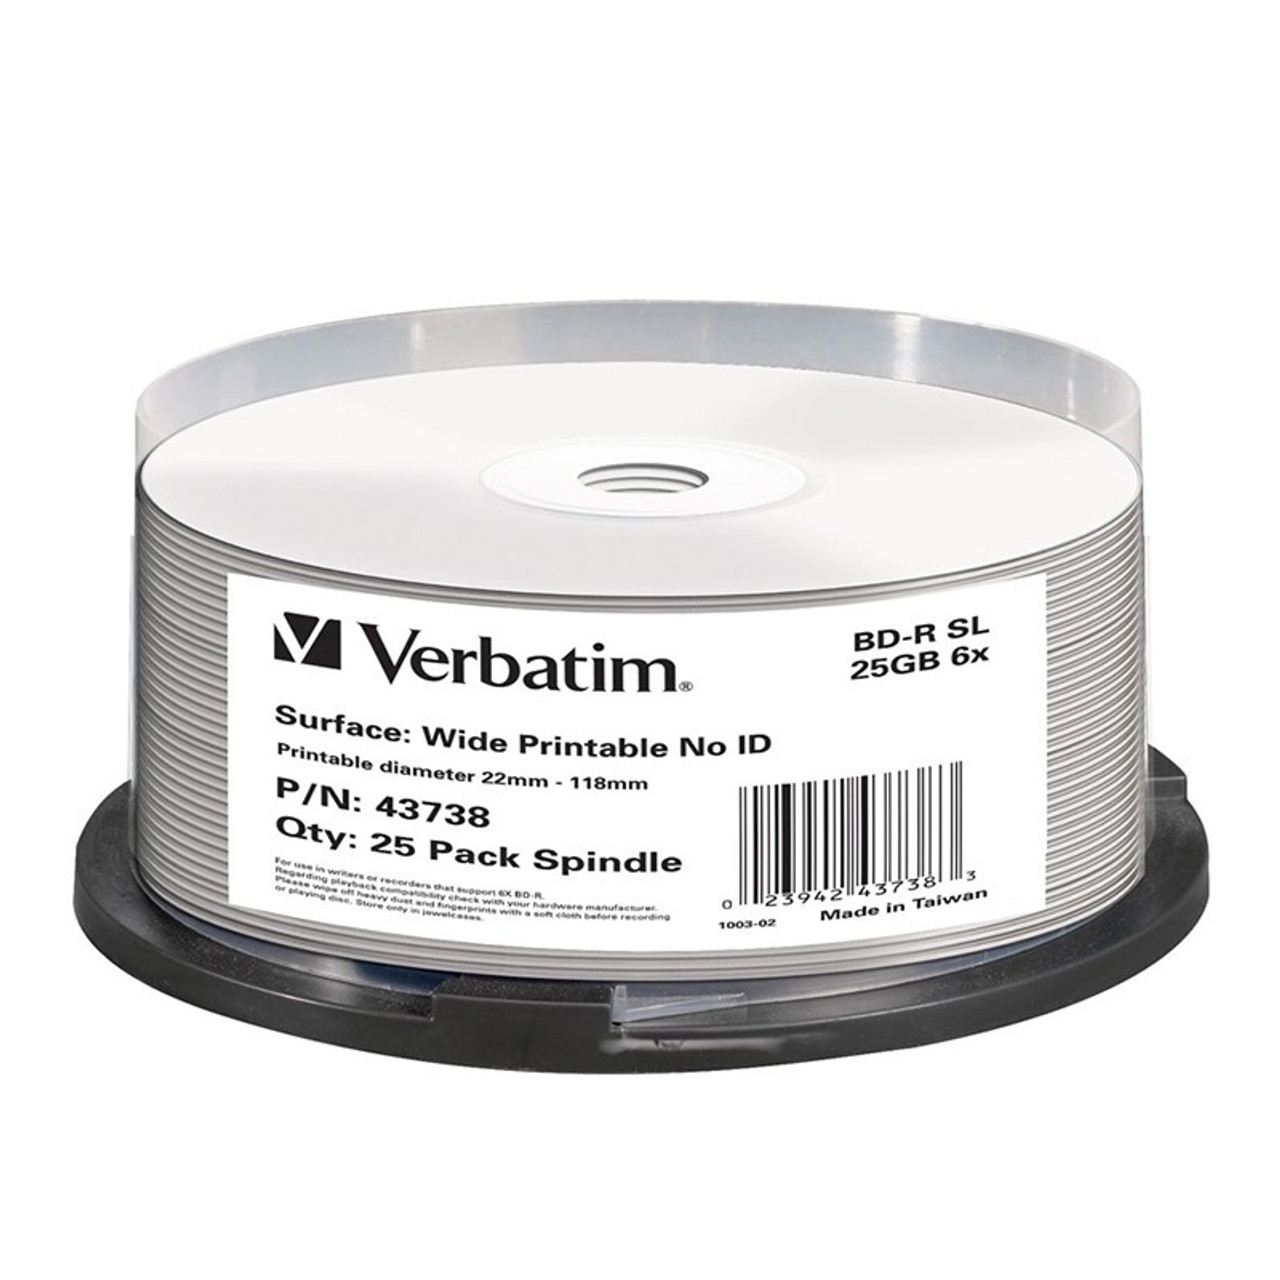 Image for Verbatim 43738 25GB BD-R Inkjet Printable Recordable Disc - 25-Pack Spindle CX Computer Superstore